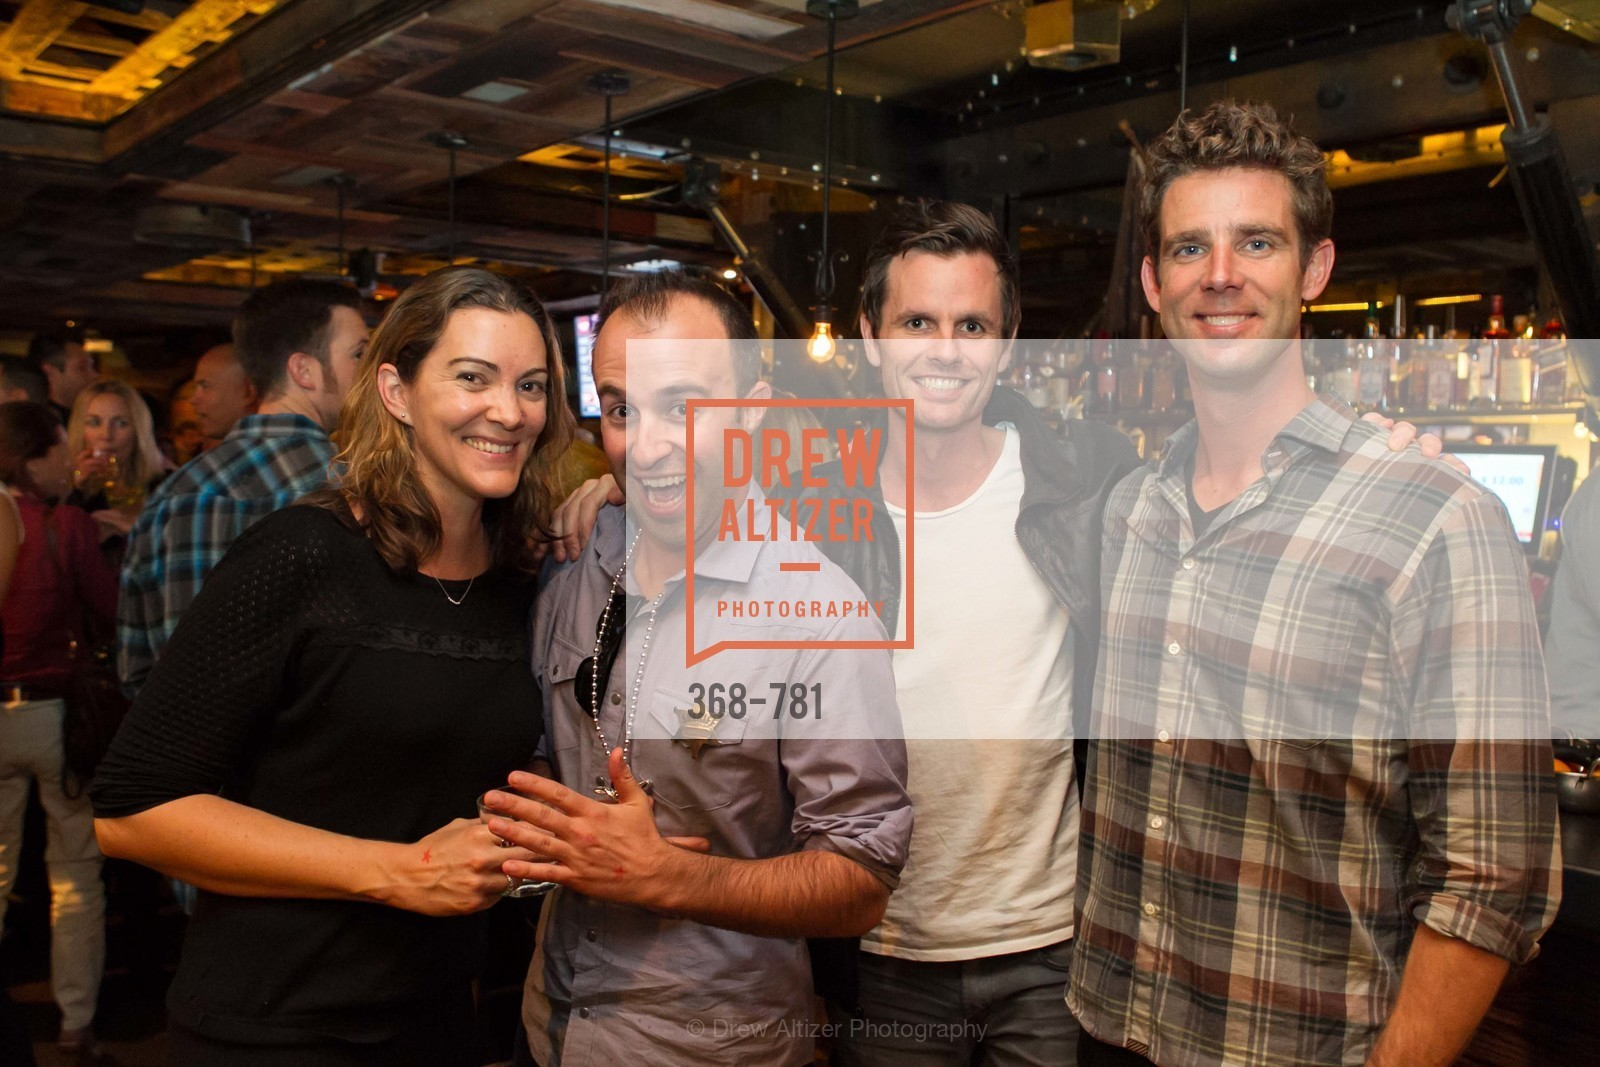 Libby Schafer, Edward Aten, Samuel Bradbury, Carter Thomas, Rooms That ROCK FOR CHEMO Fundraiser, US, April 1st, 2015,Drew Altizer, Drew Altizer Photography, full-service agency, private events, San Francisco photographer, photographer california